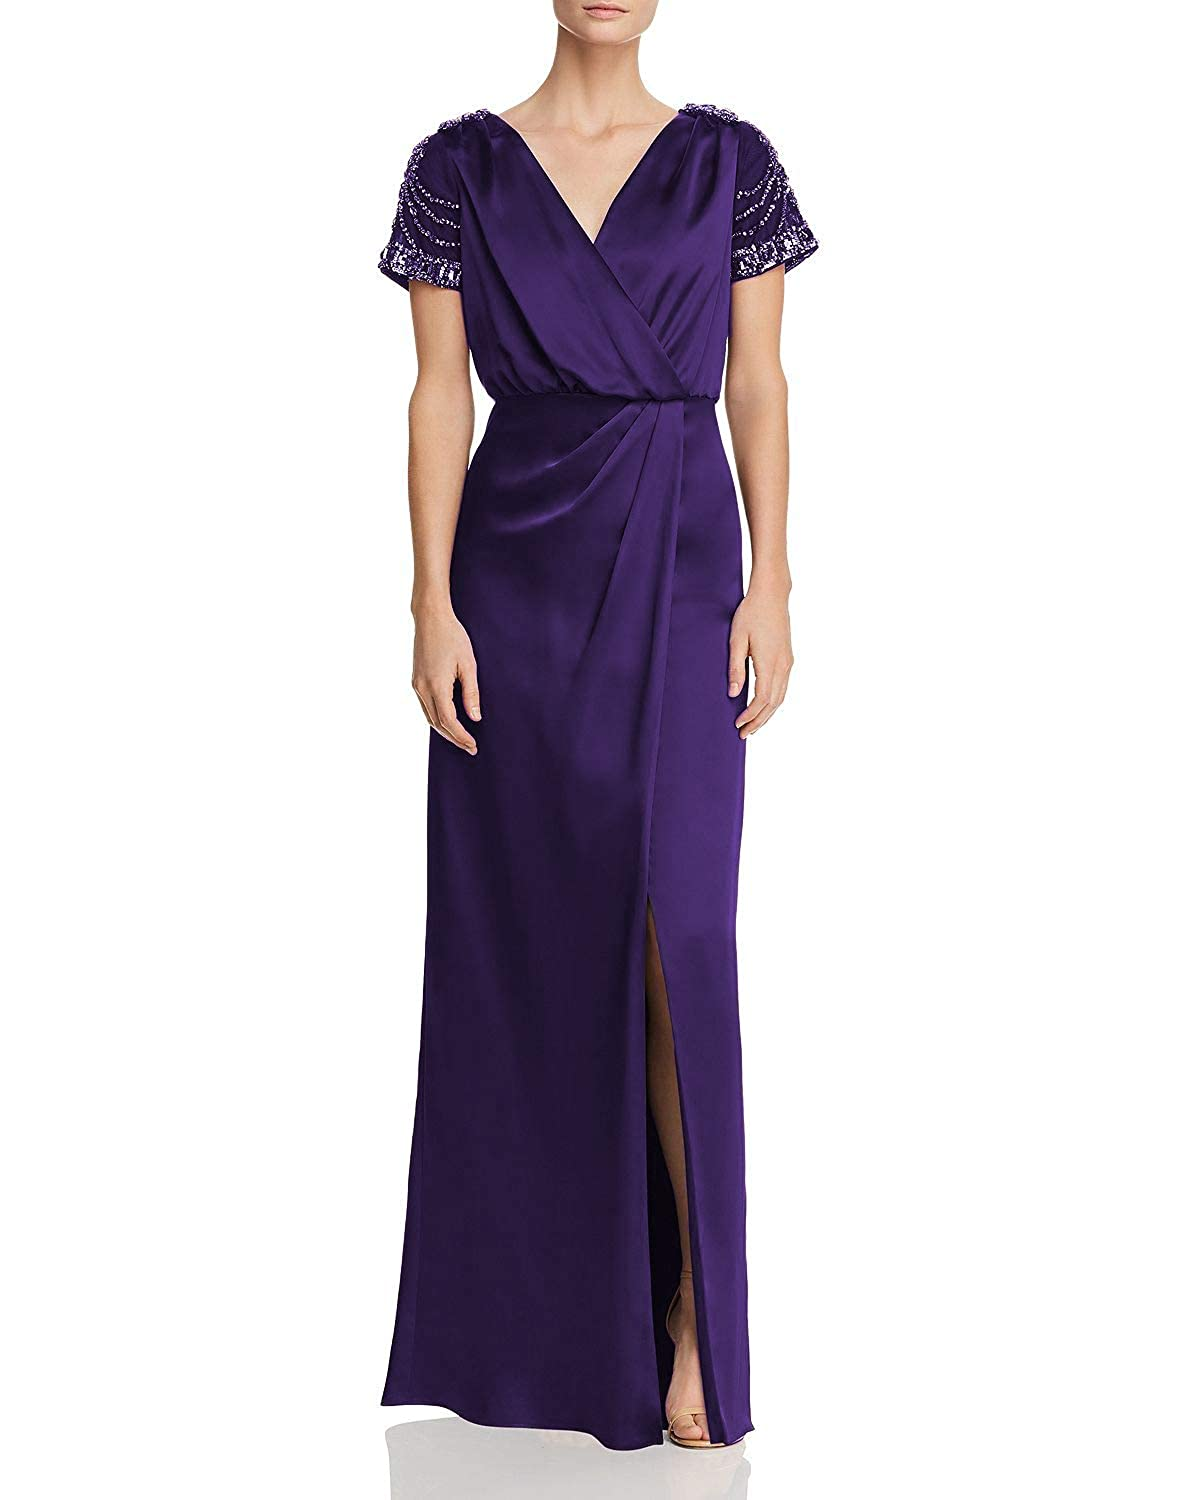 Dark Purple Wanshaqin Women's Sheer Embellished Caps VNeck Evening Gown for Wedding Party Occasions